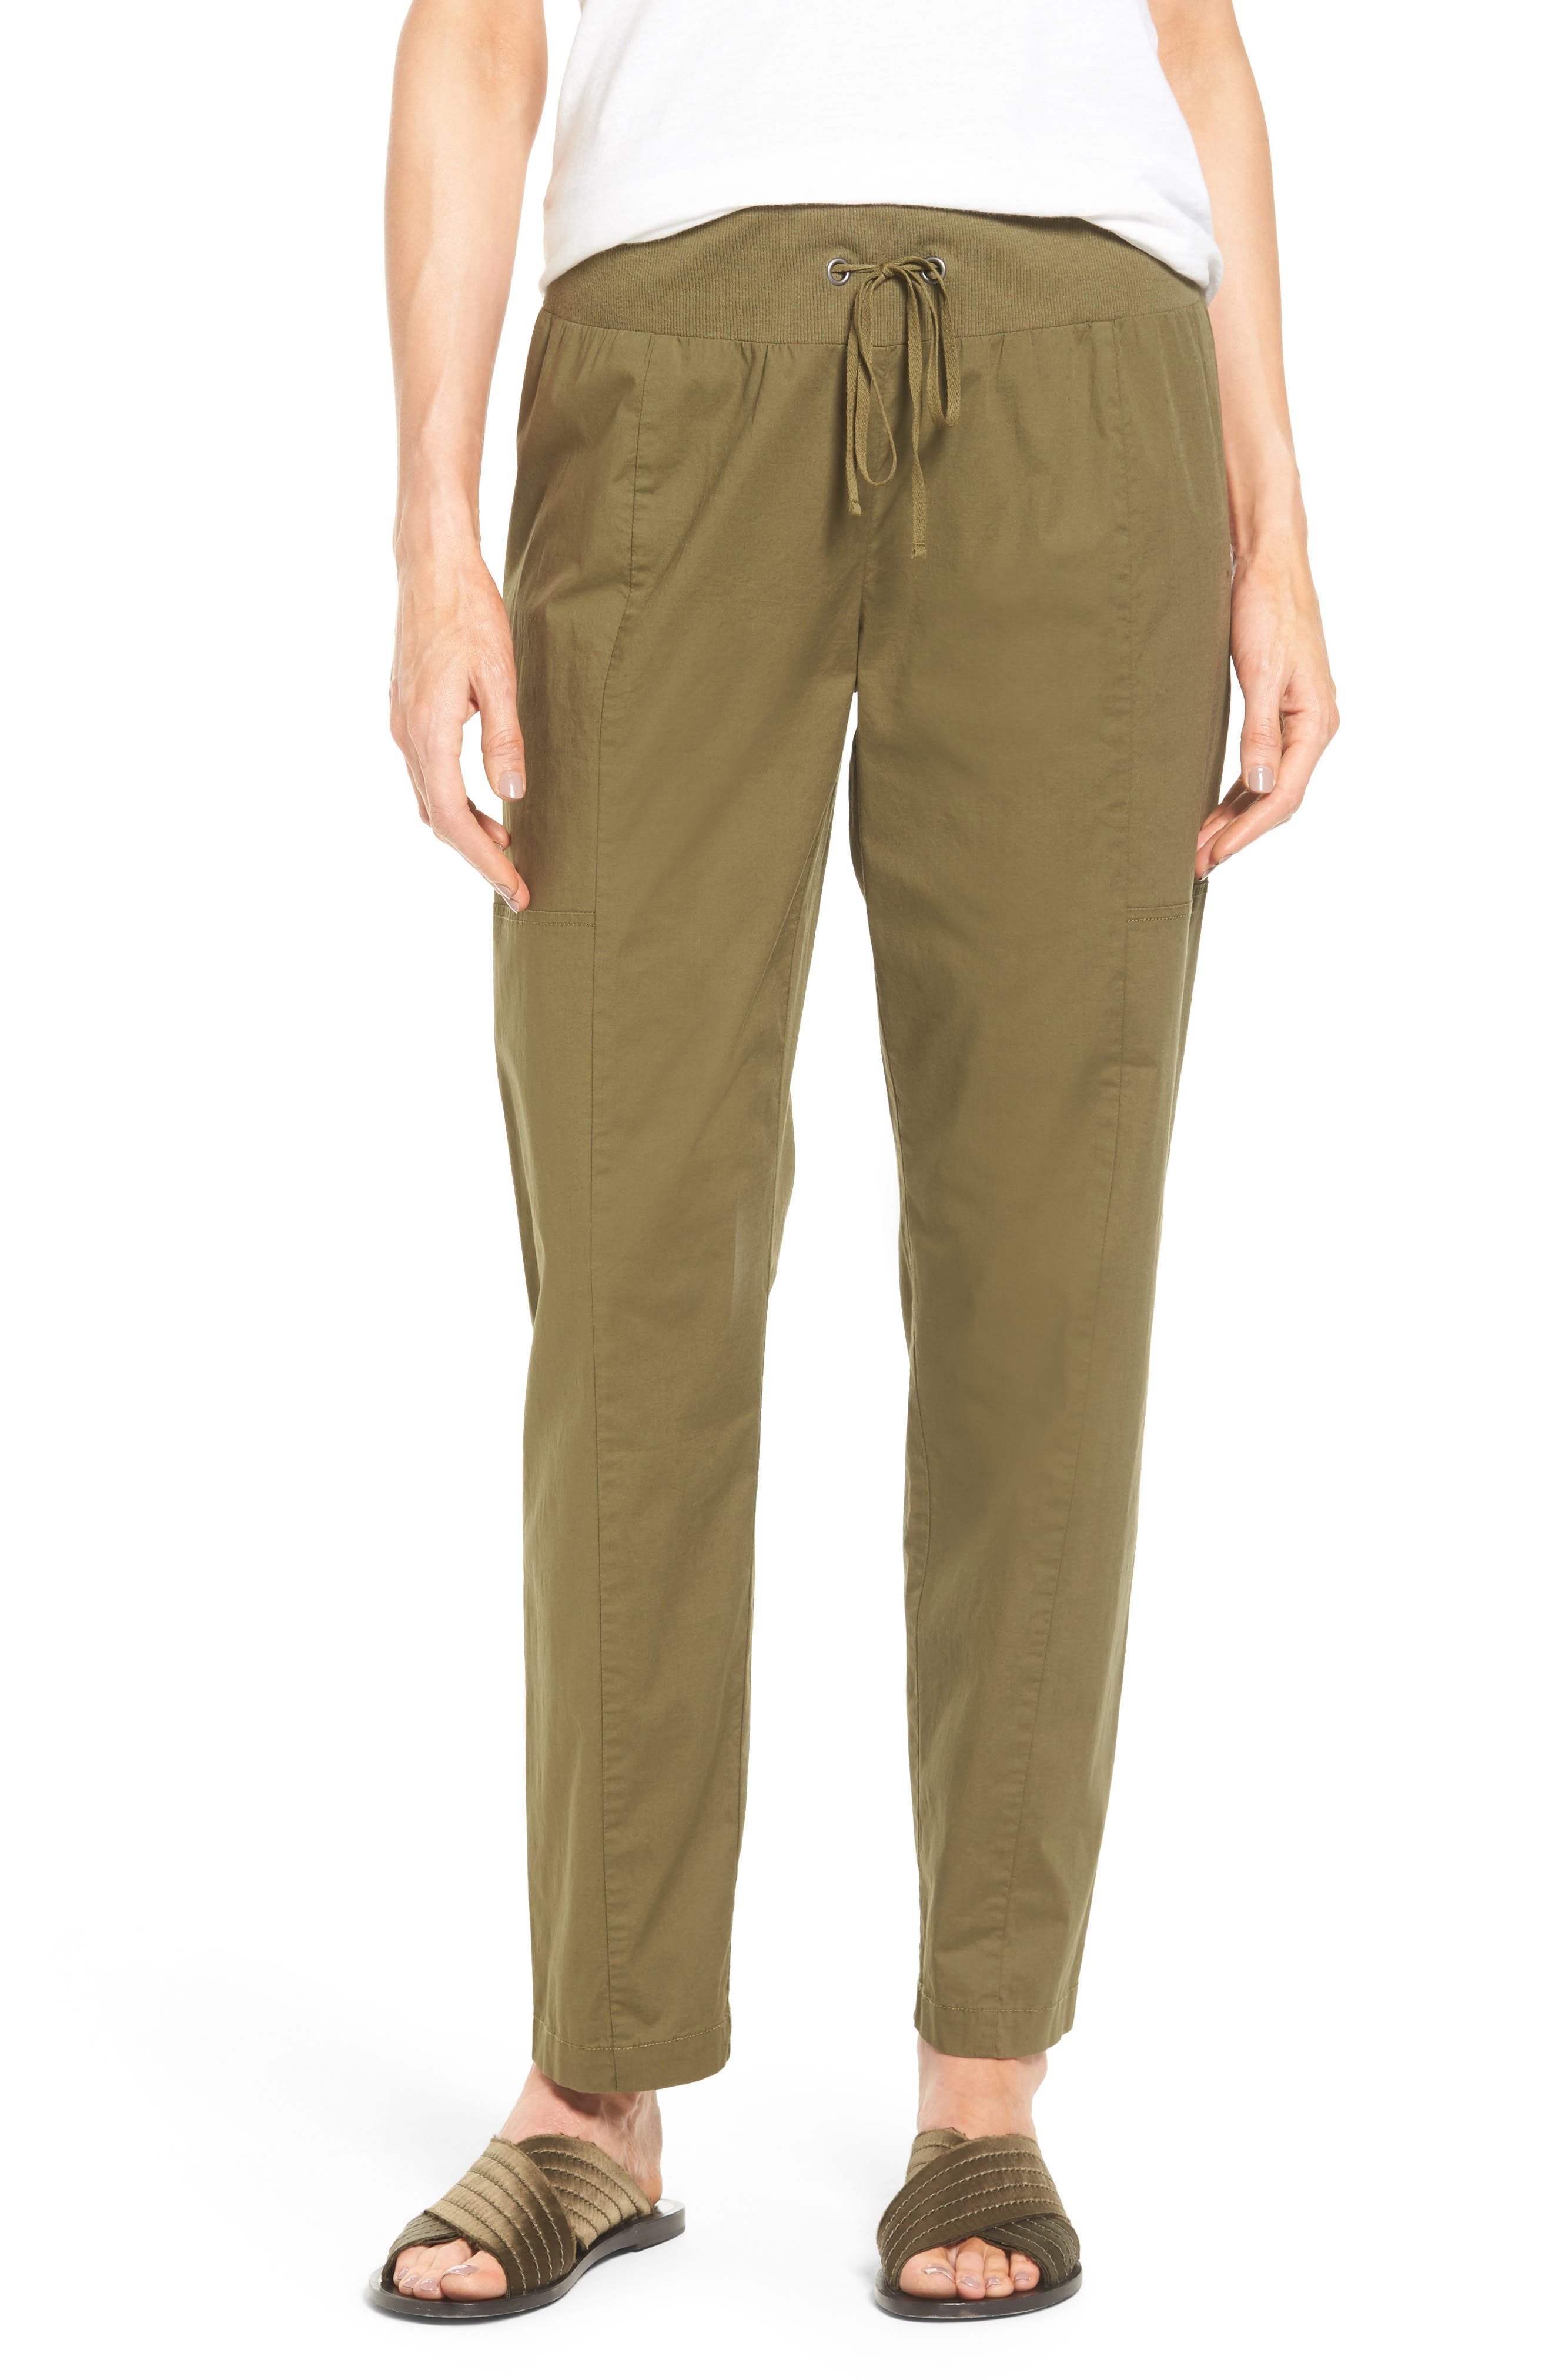 Alternate Image 1 Selected - Eileen Fisher Drawstring Ankle Pants (Regular & Petite)